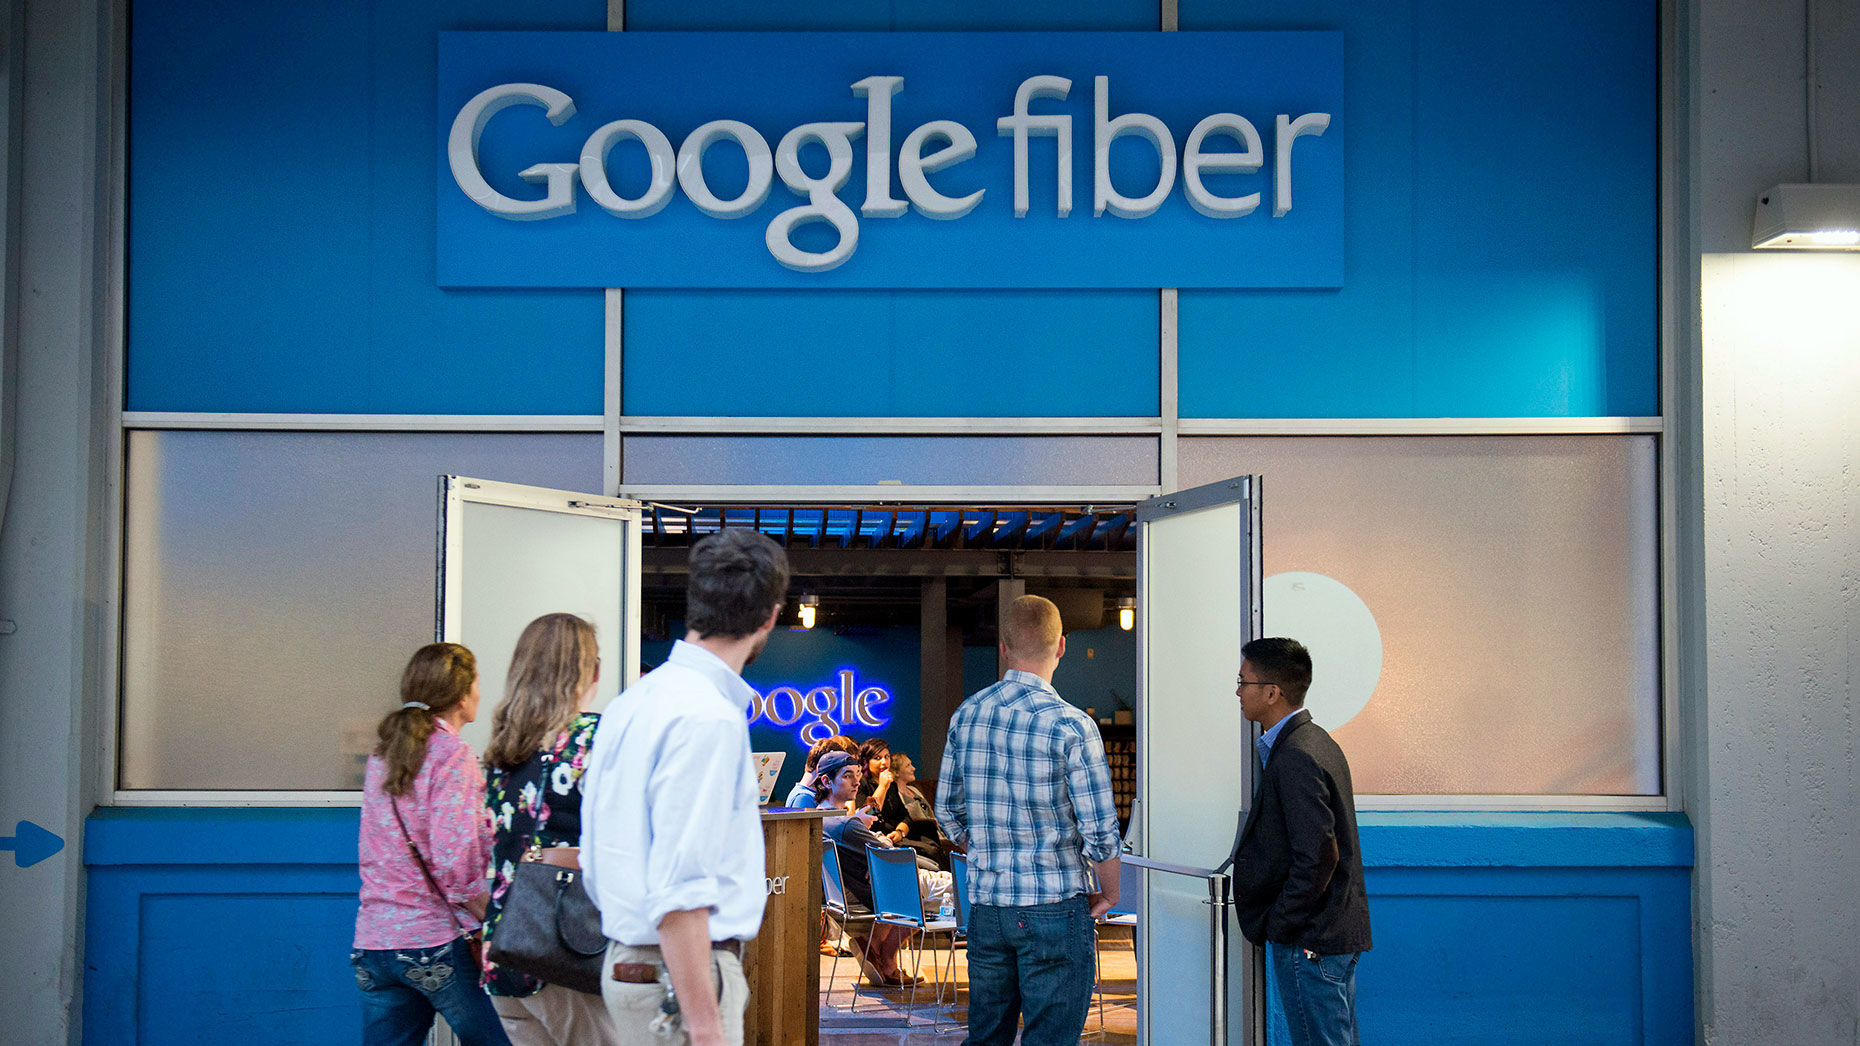 People walk past Google Fiber's store in Austin, Texas in April, 2015. Photo by Bloomberg.